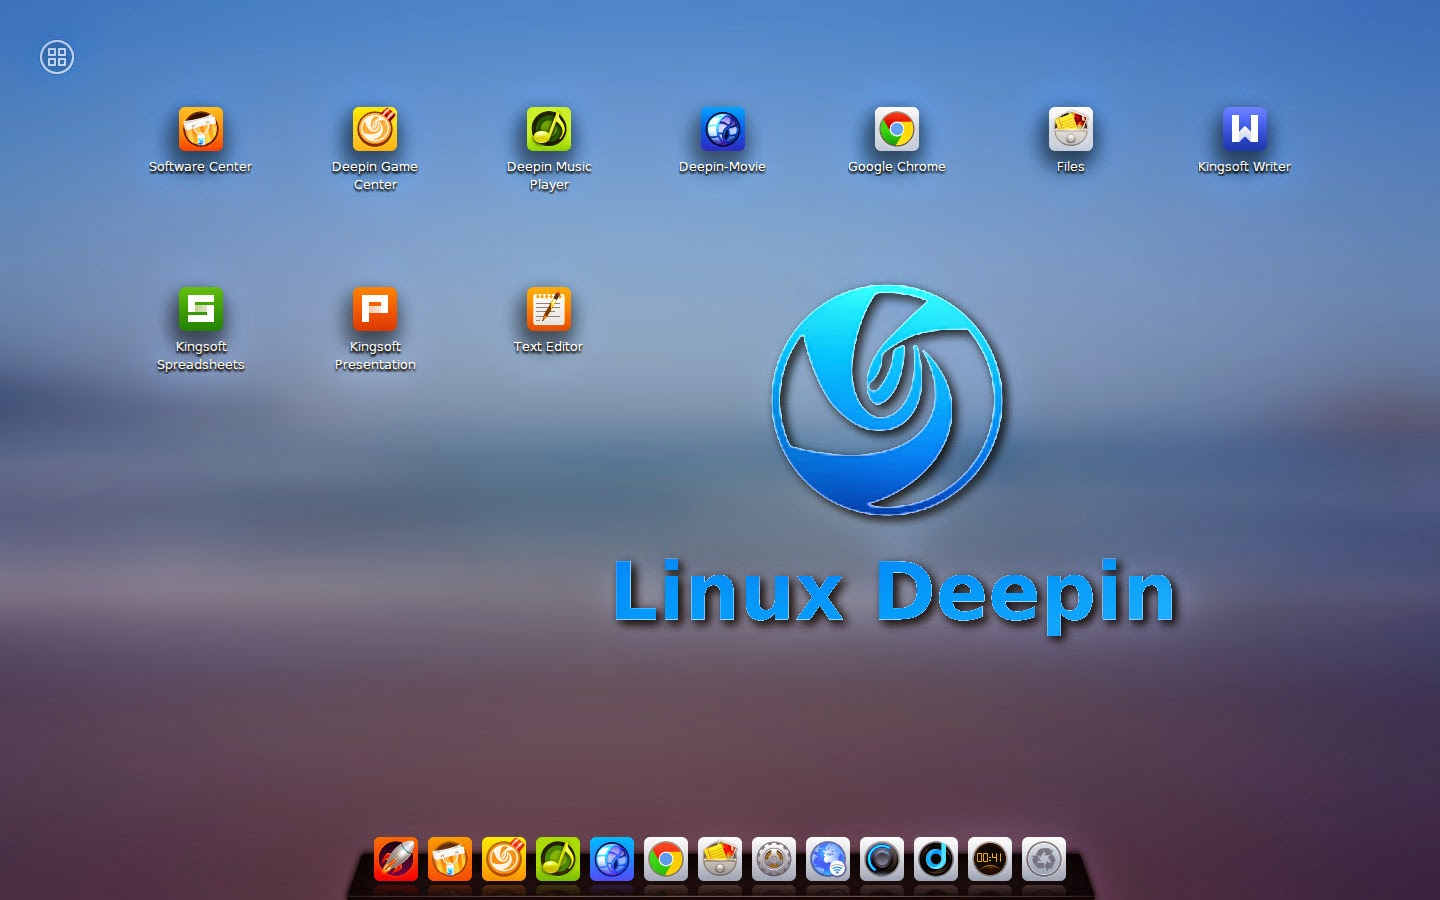 Linux Deepin 2014 Review